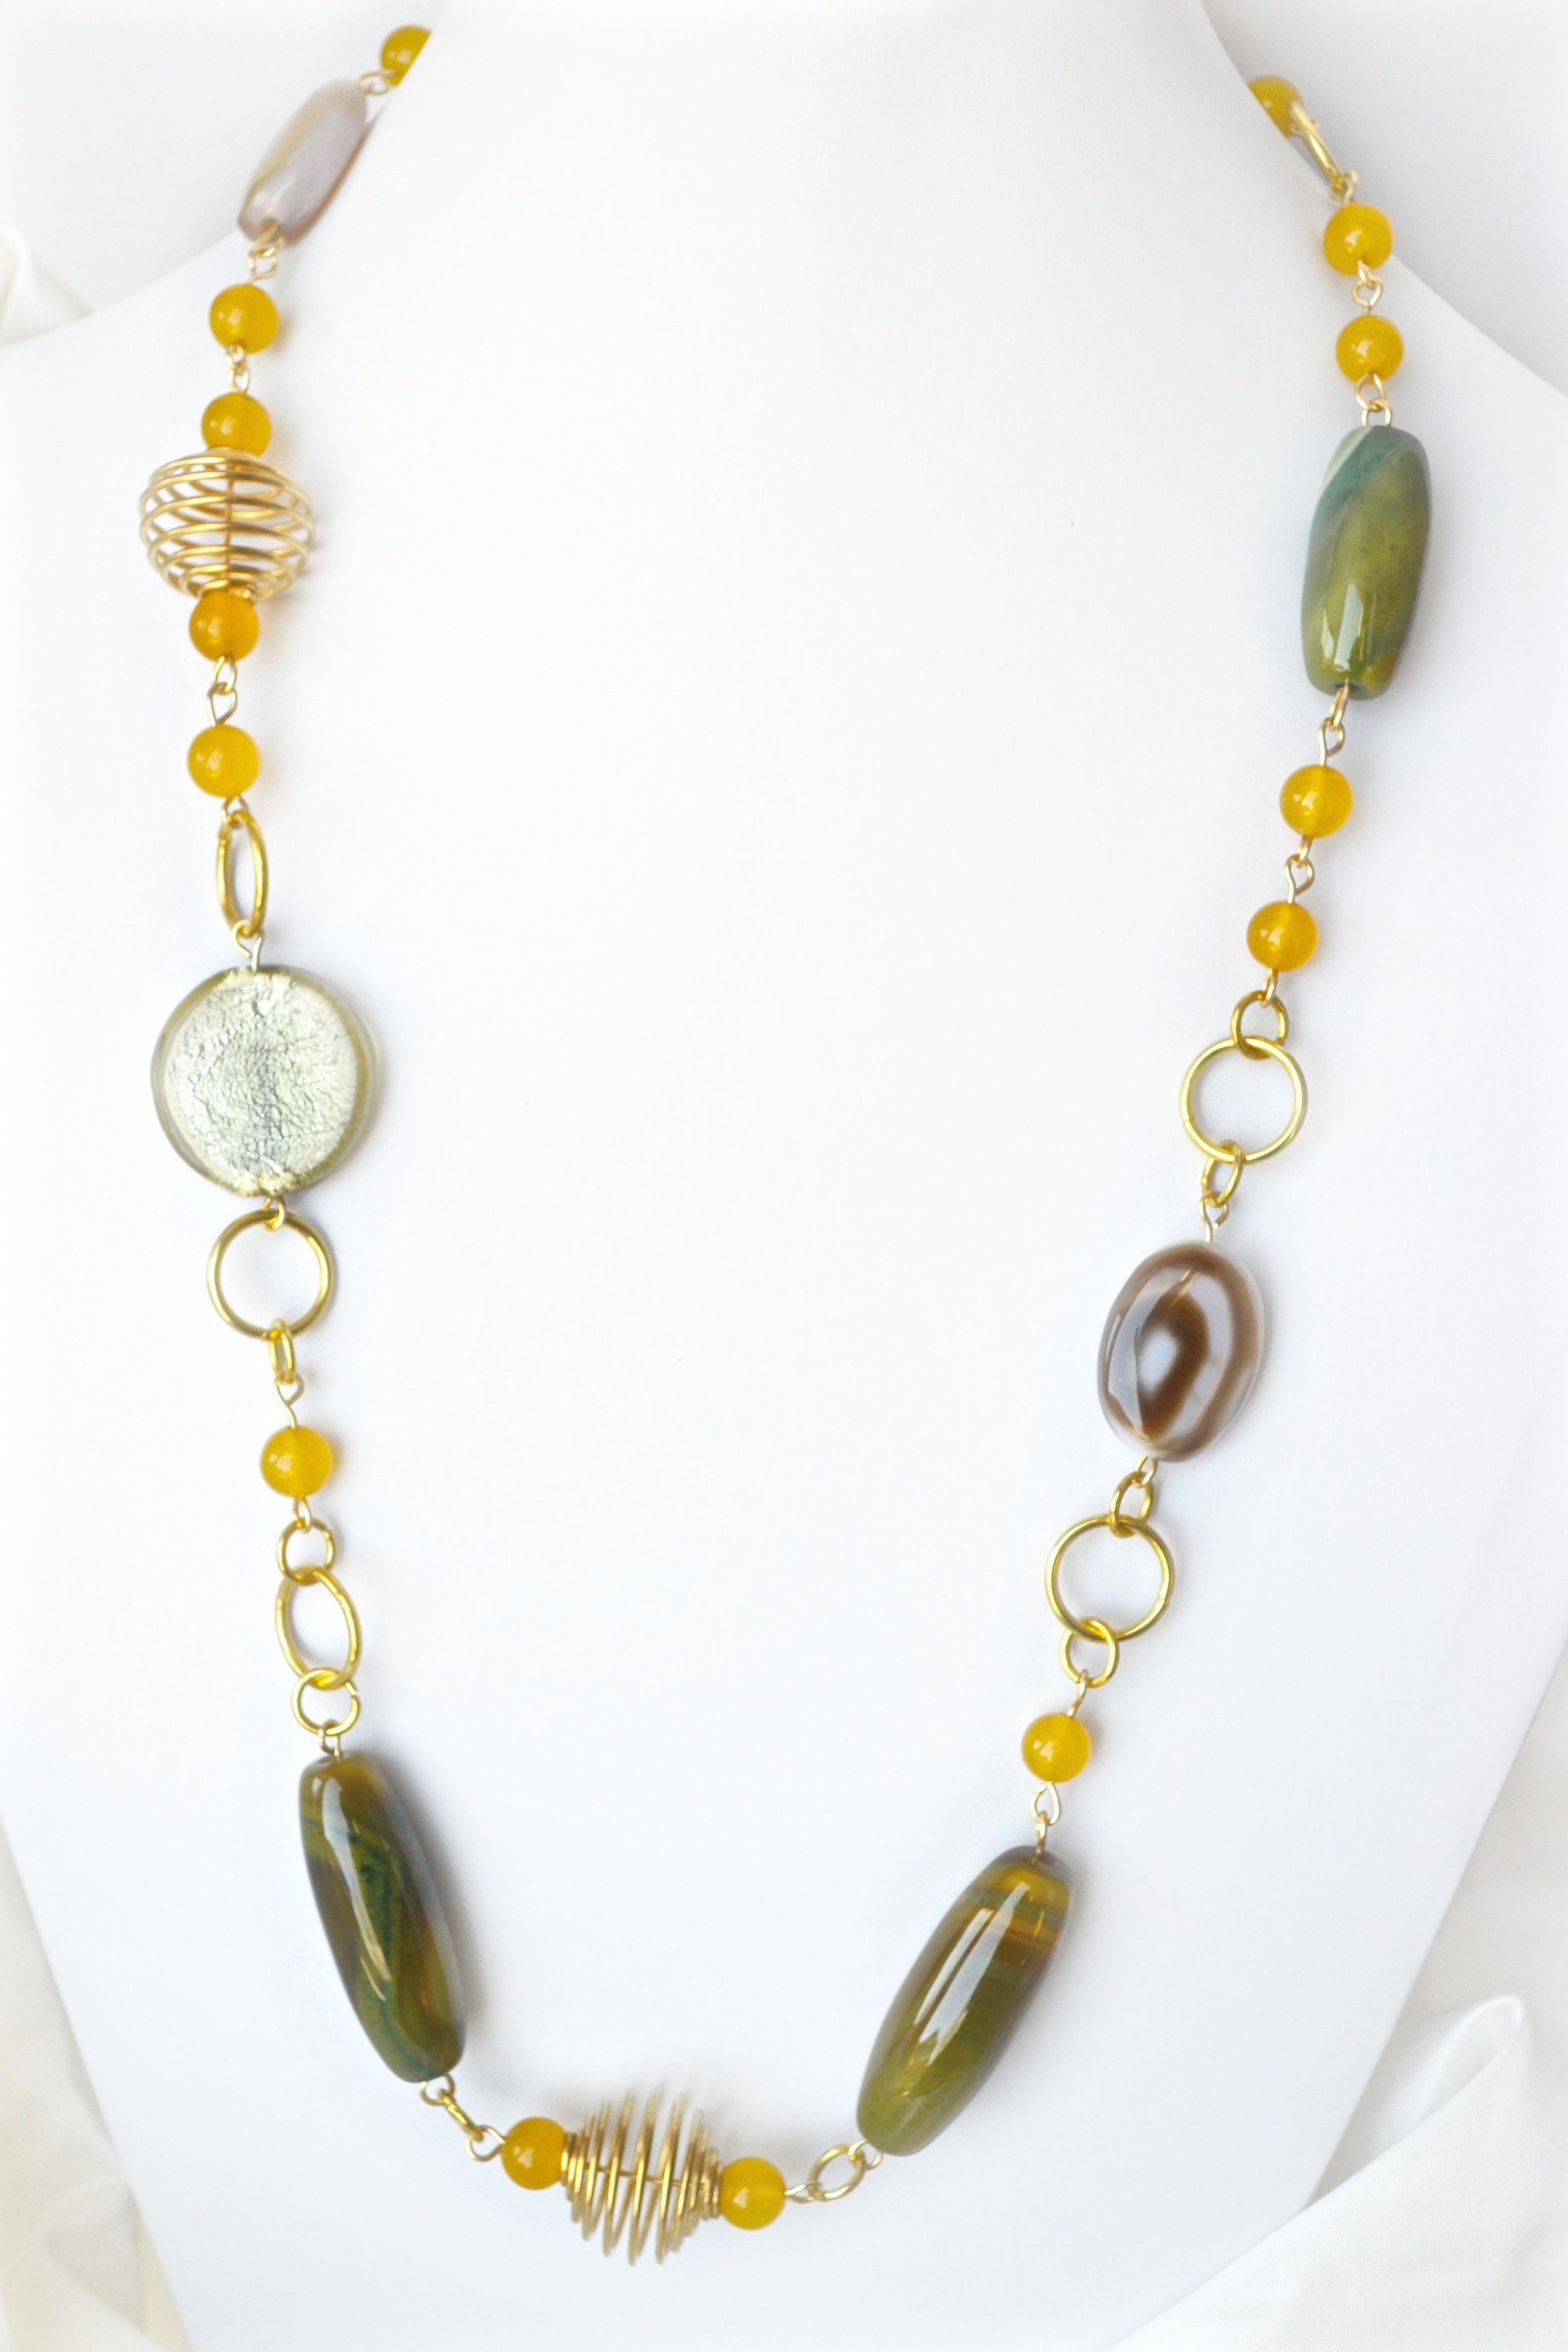 green agate jewelry birthday gift for mom green and purple agate stone beaded necklace and earring set Mothers day gift for grandmother